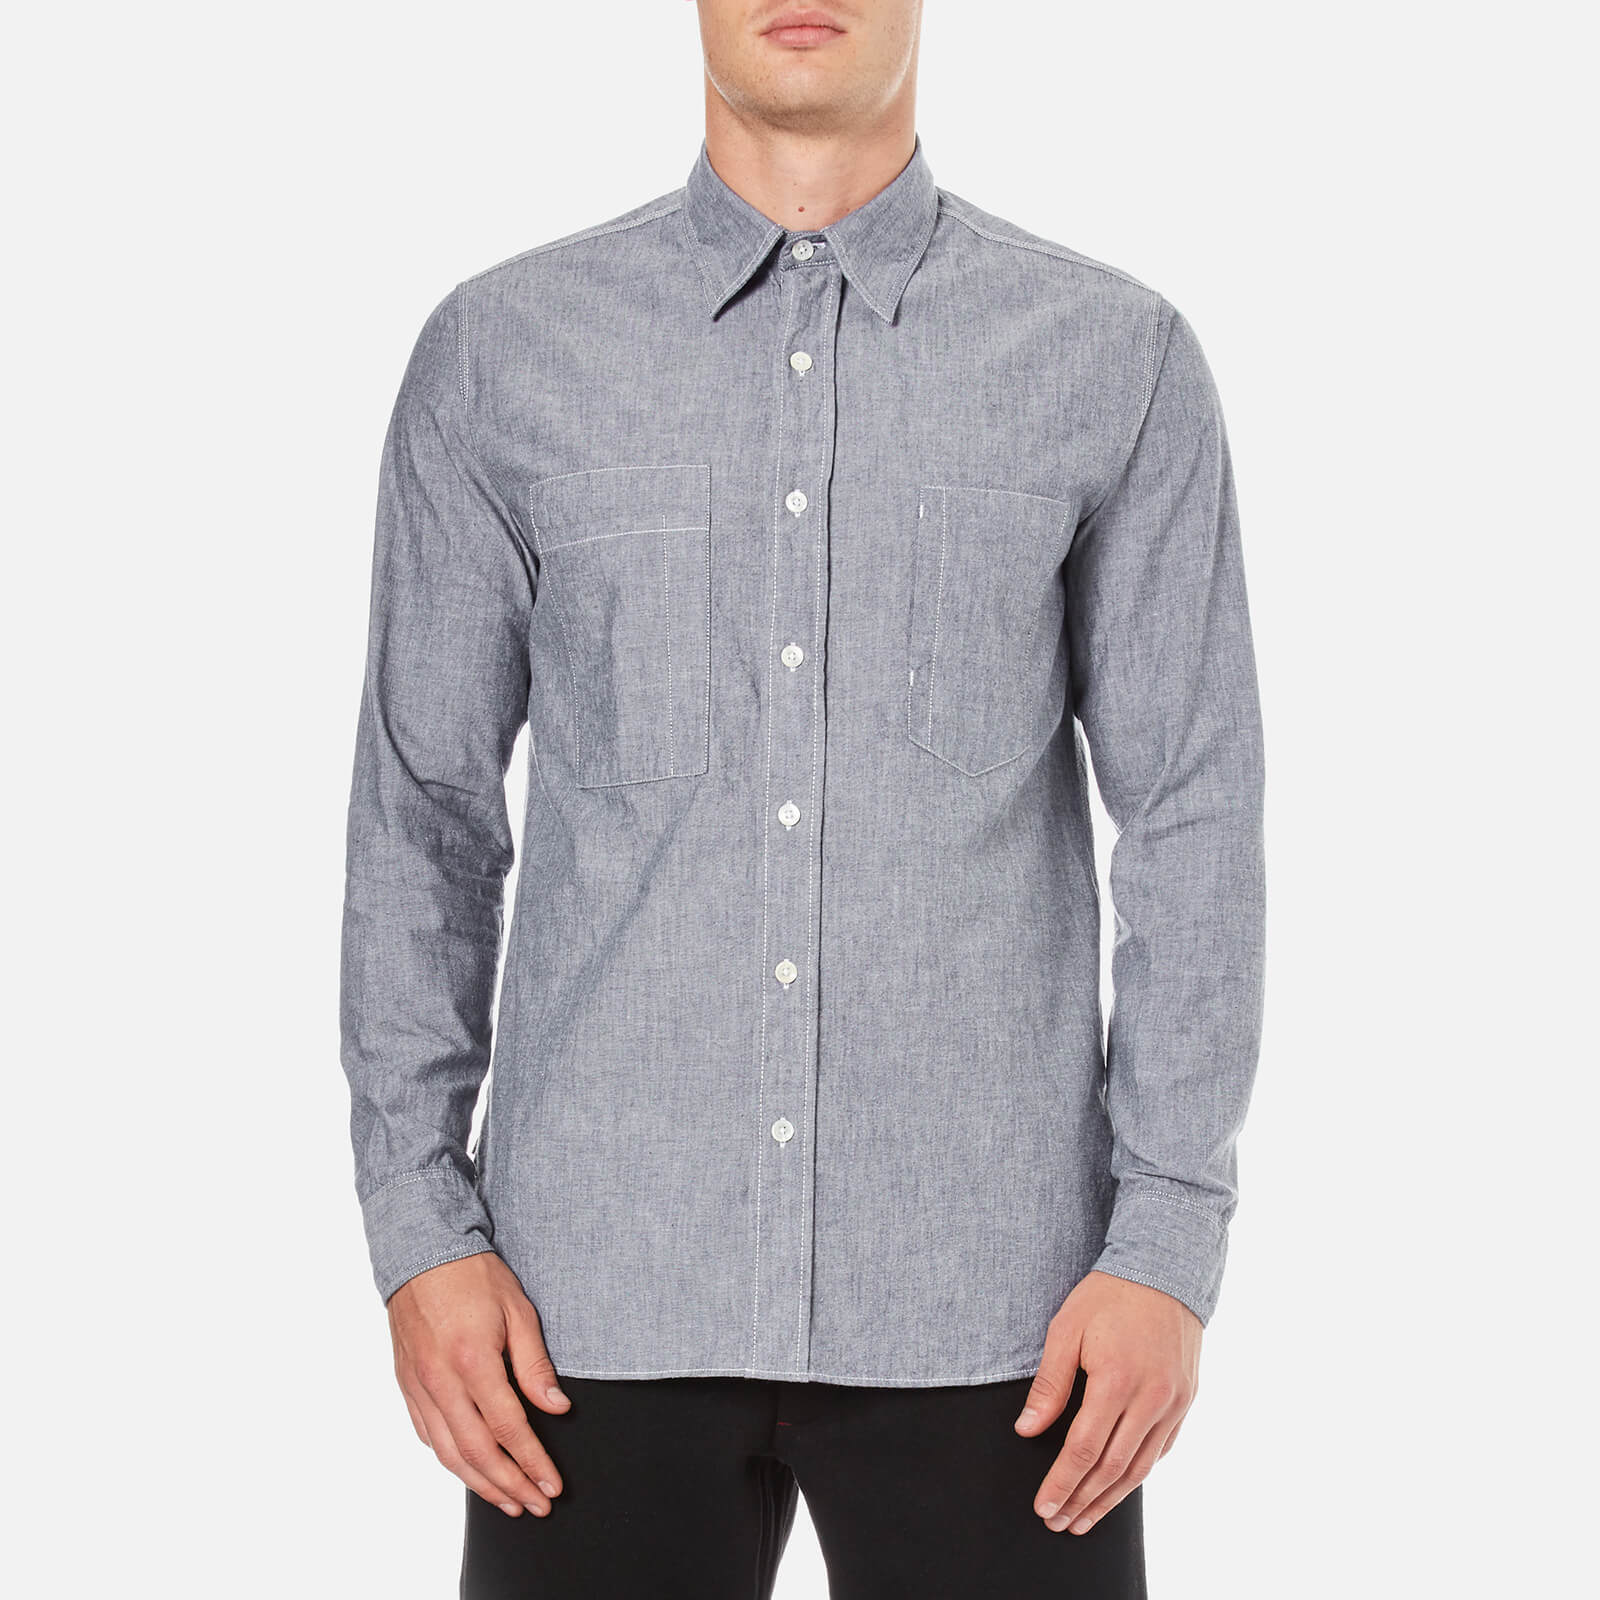 224310f93cb6 Nigel Cabourn Men s Denim Chambray Workers Shirt - Indigo - Free UK  Delivery over £50